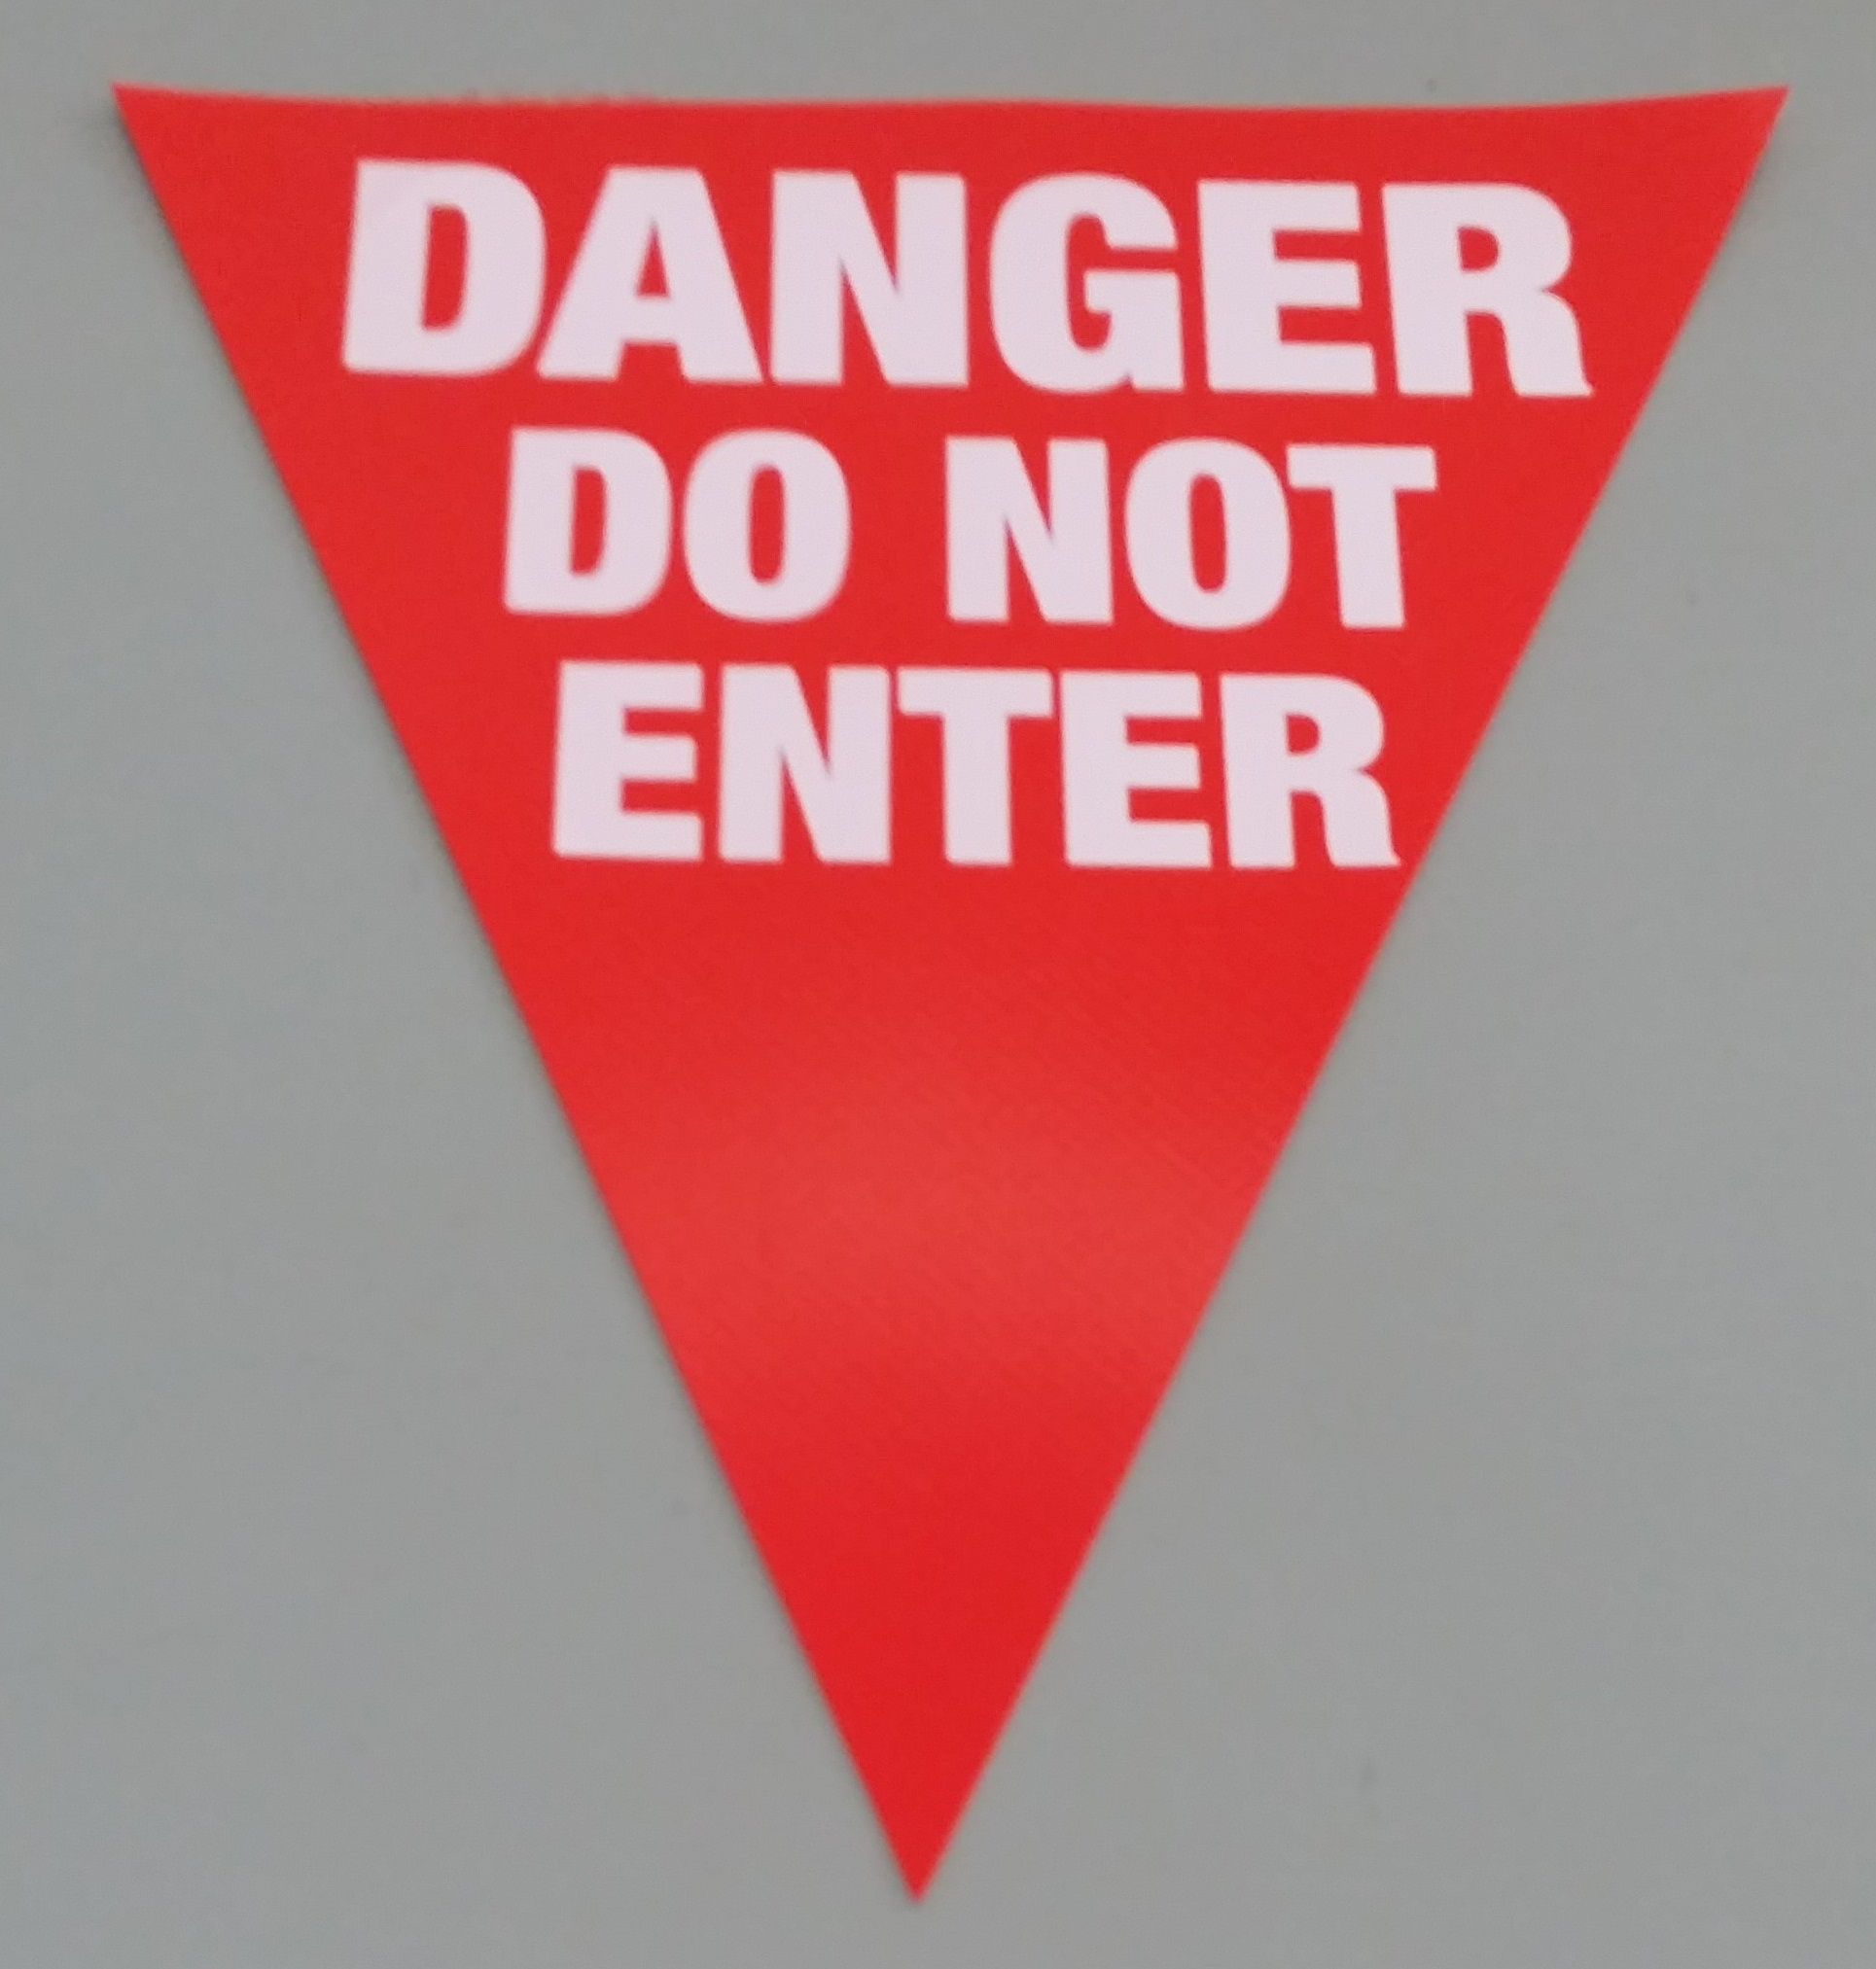 Danger Do Not Enter (red with white print)